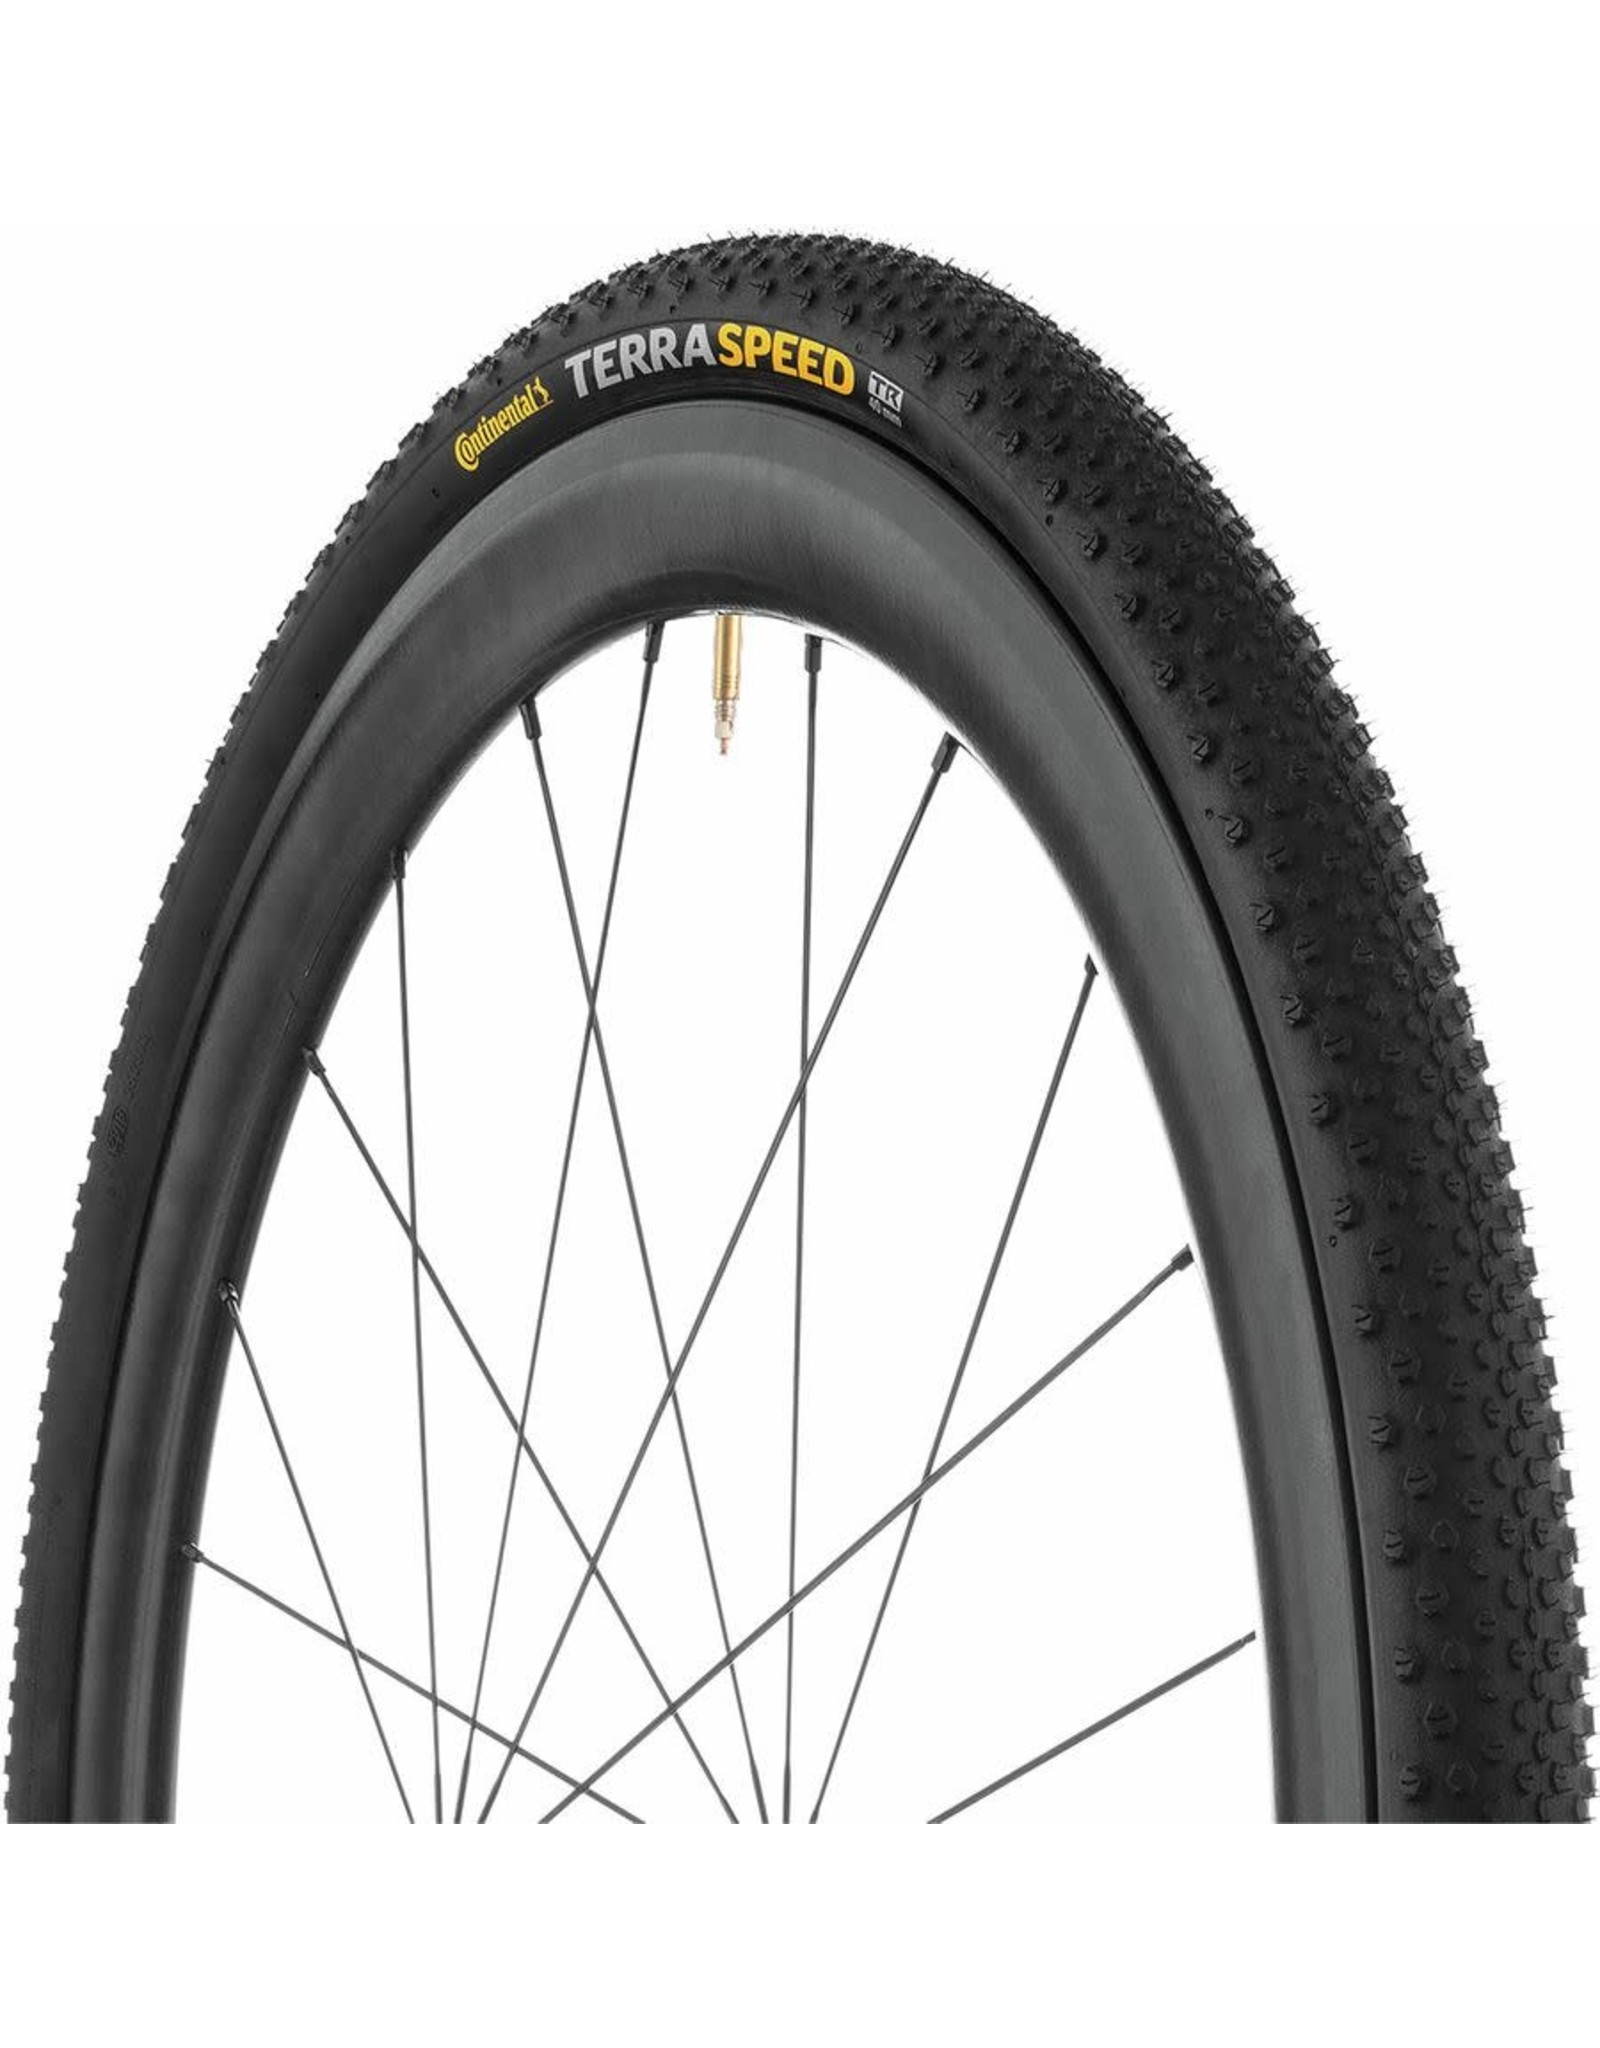 CONTINENTAL Continental - Tire - TERRA SPEED 700x35c, ProTection TR + Black Chili